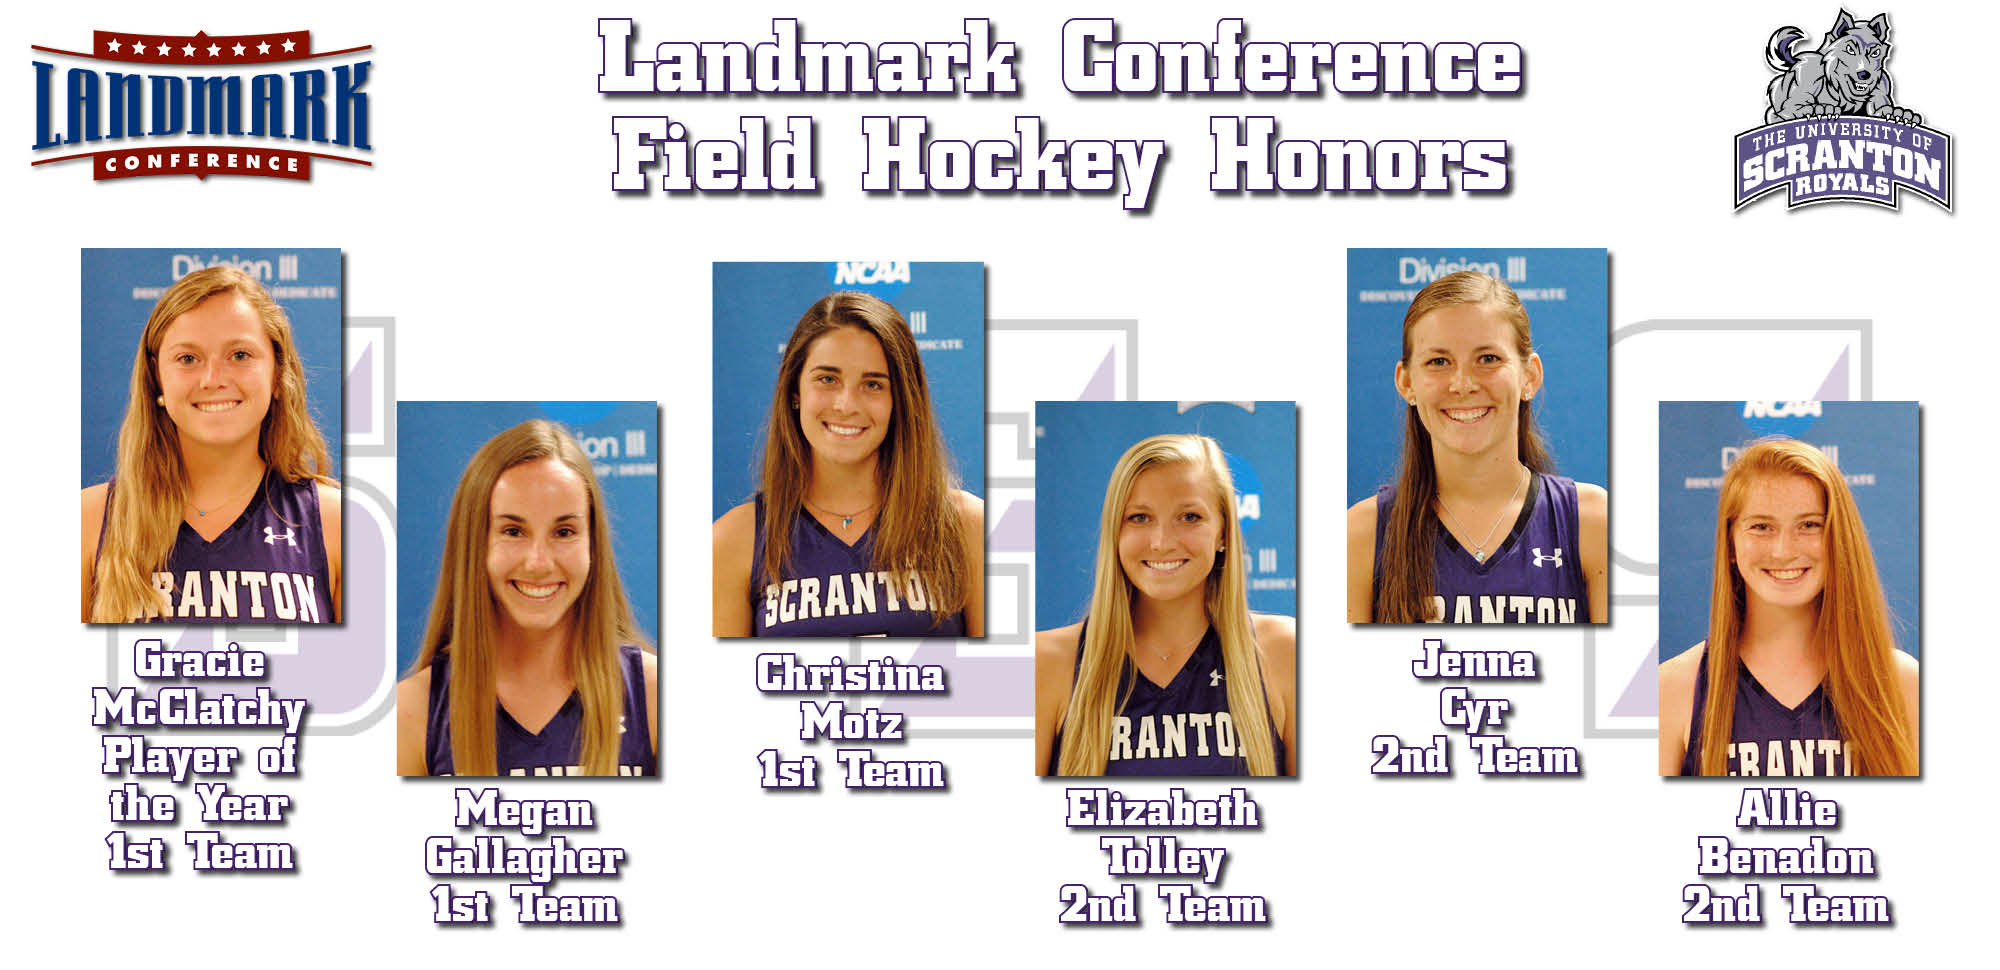 McClatchy Named Landmark Conference Player of the Year to Highlight Seven Year-End Awards for Field Hockey